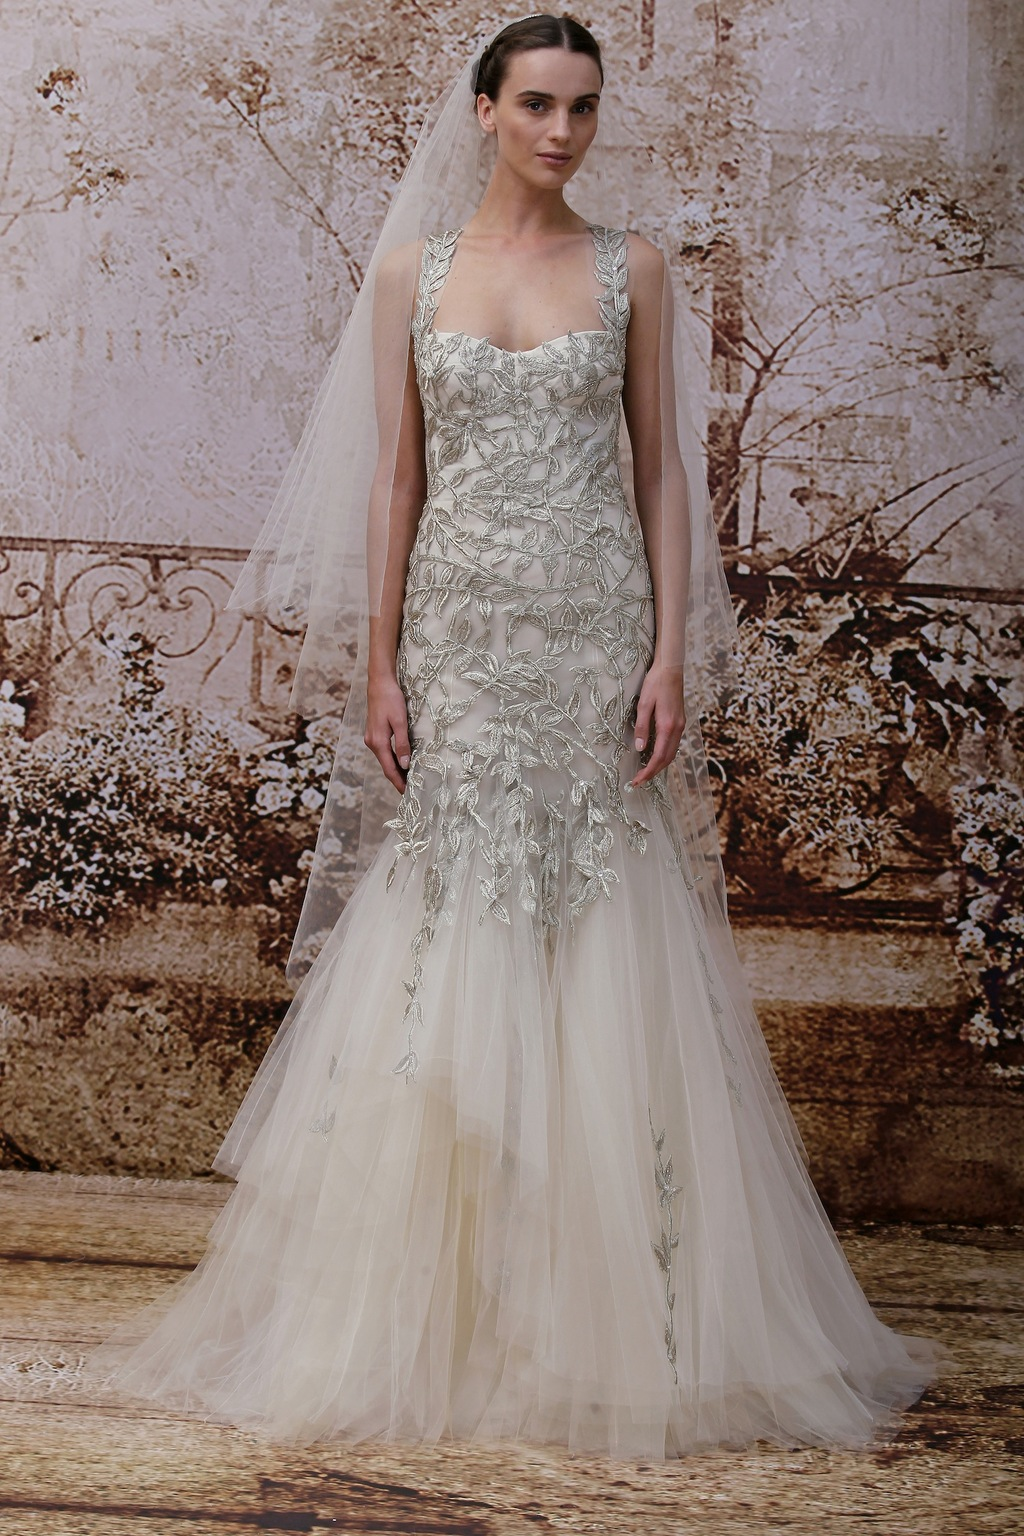 Wedding-dress-by-monique-lhuillier-fall-2014-bridal-look-28.full